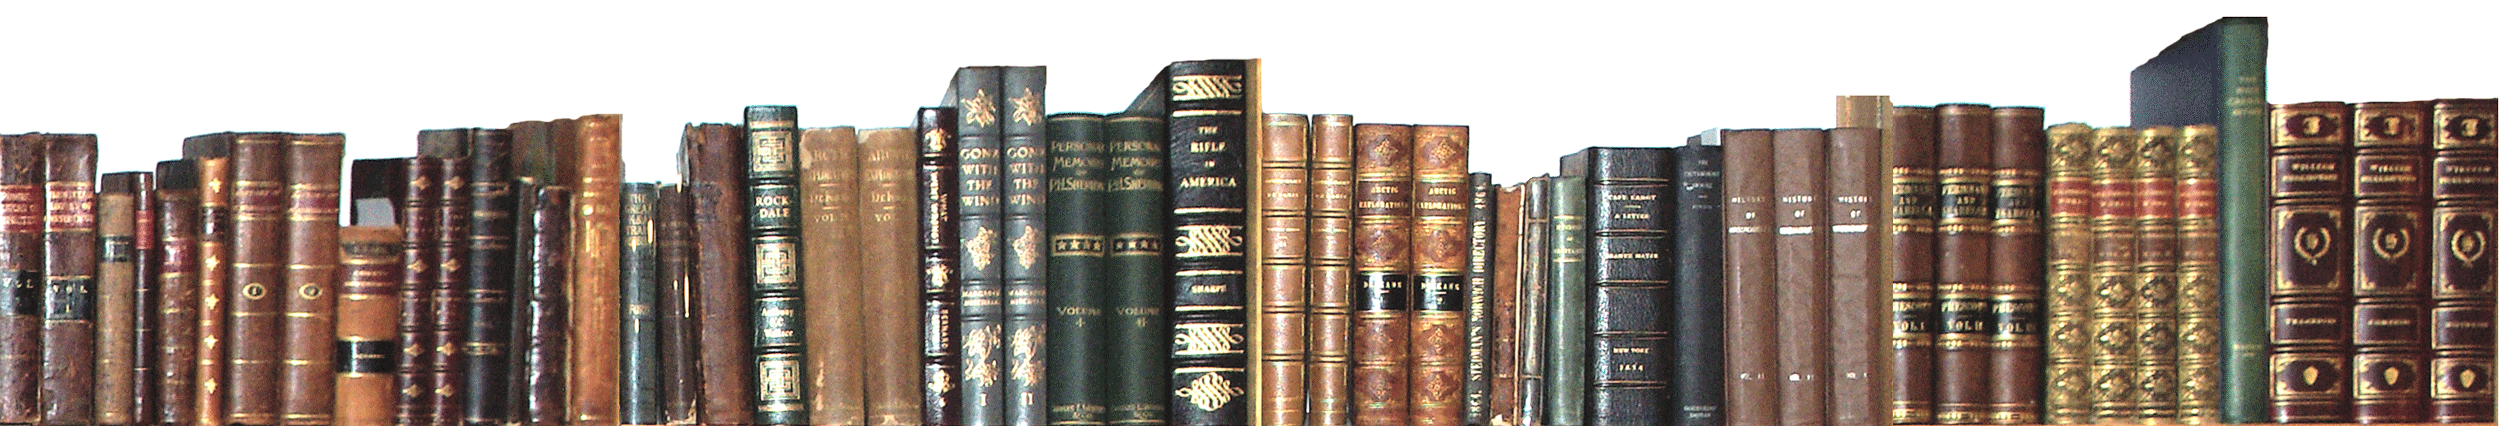 Shelf Of Antiquarian Books